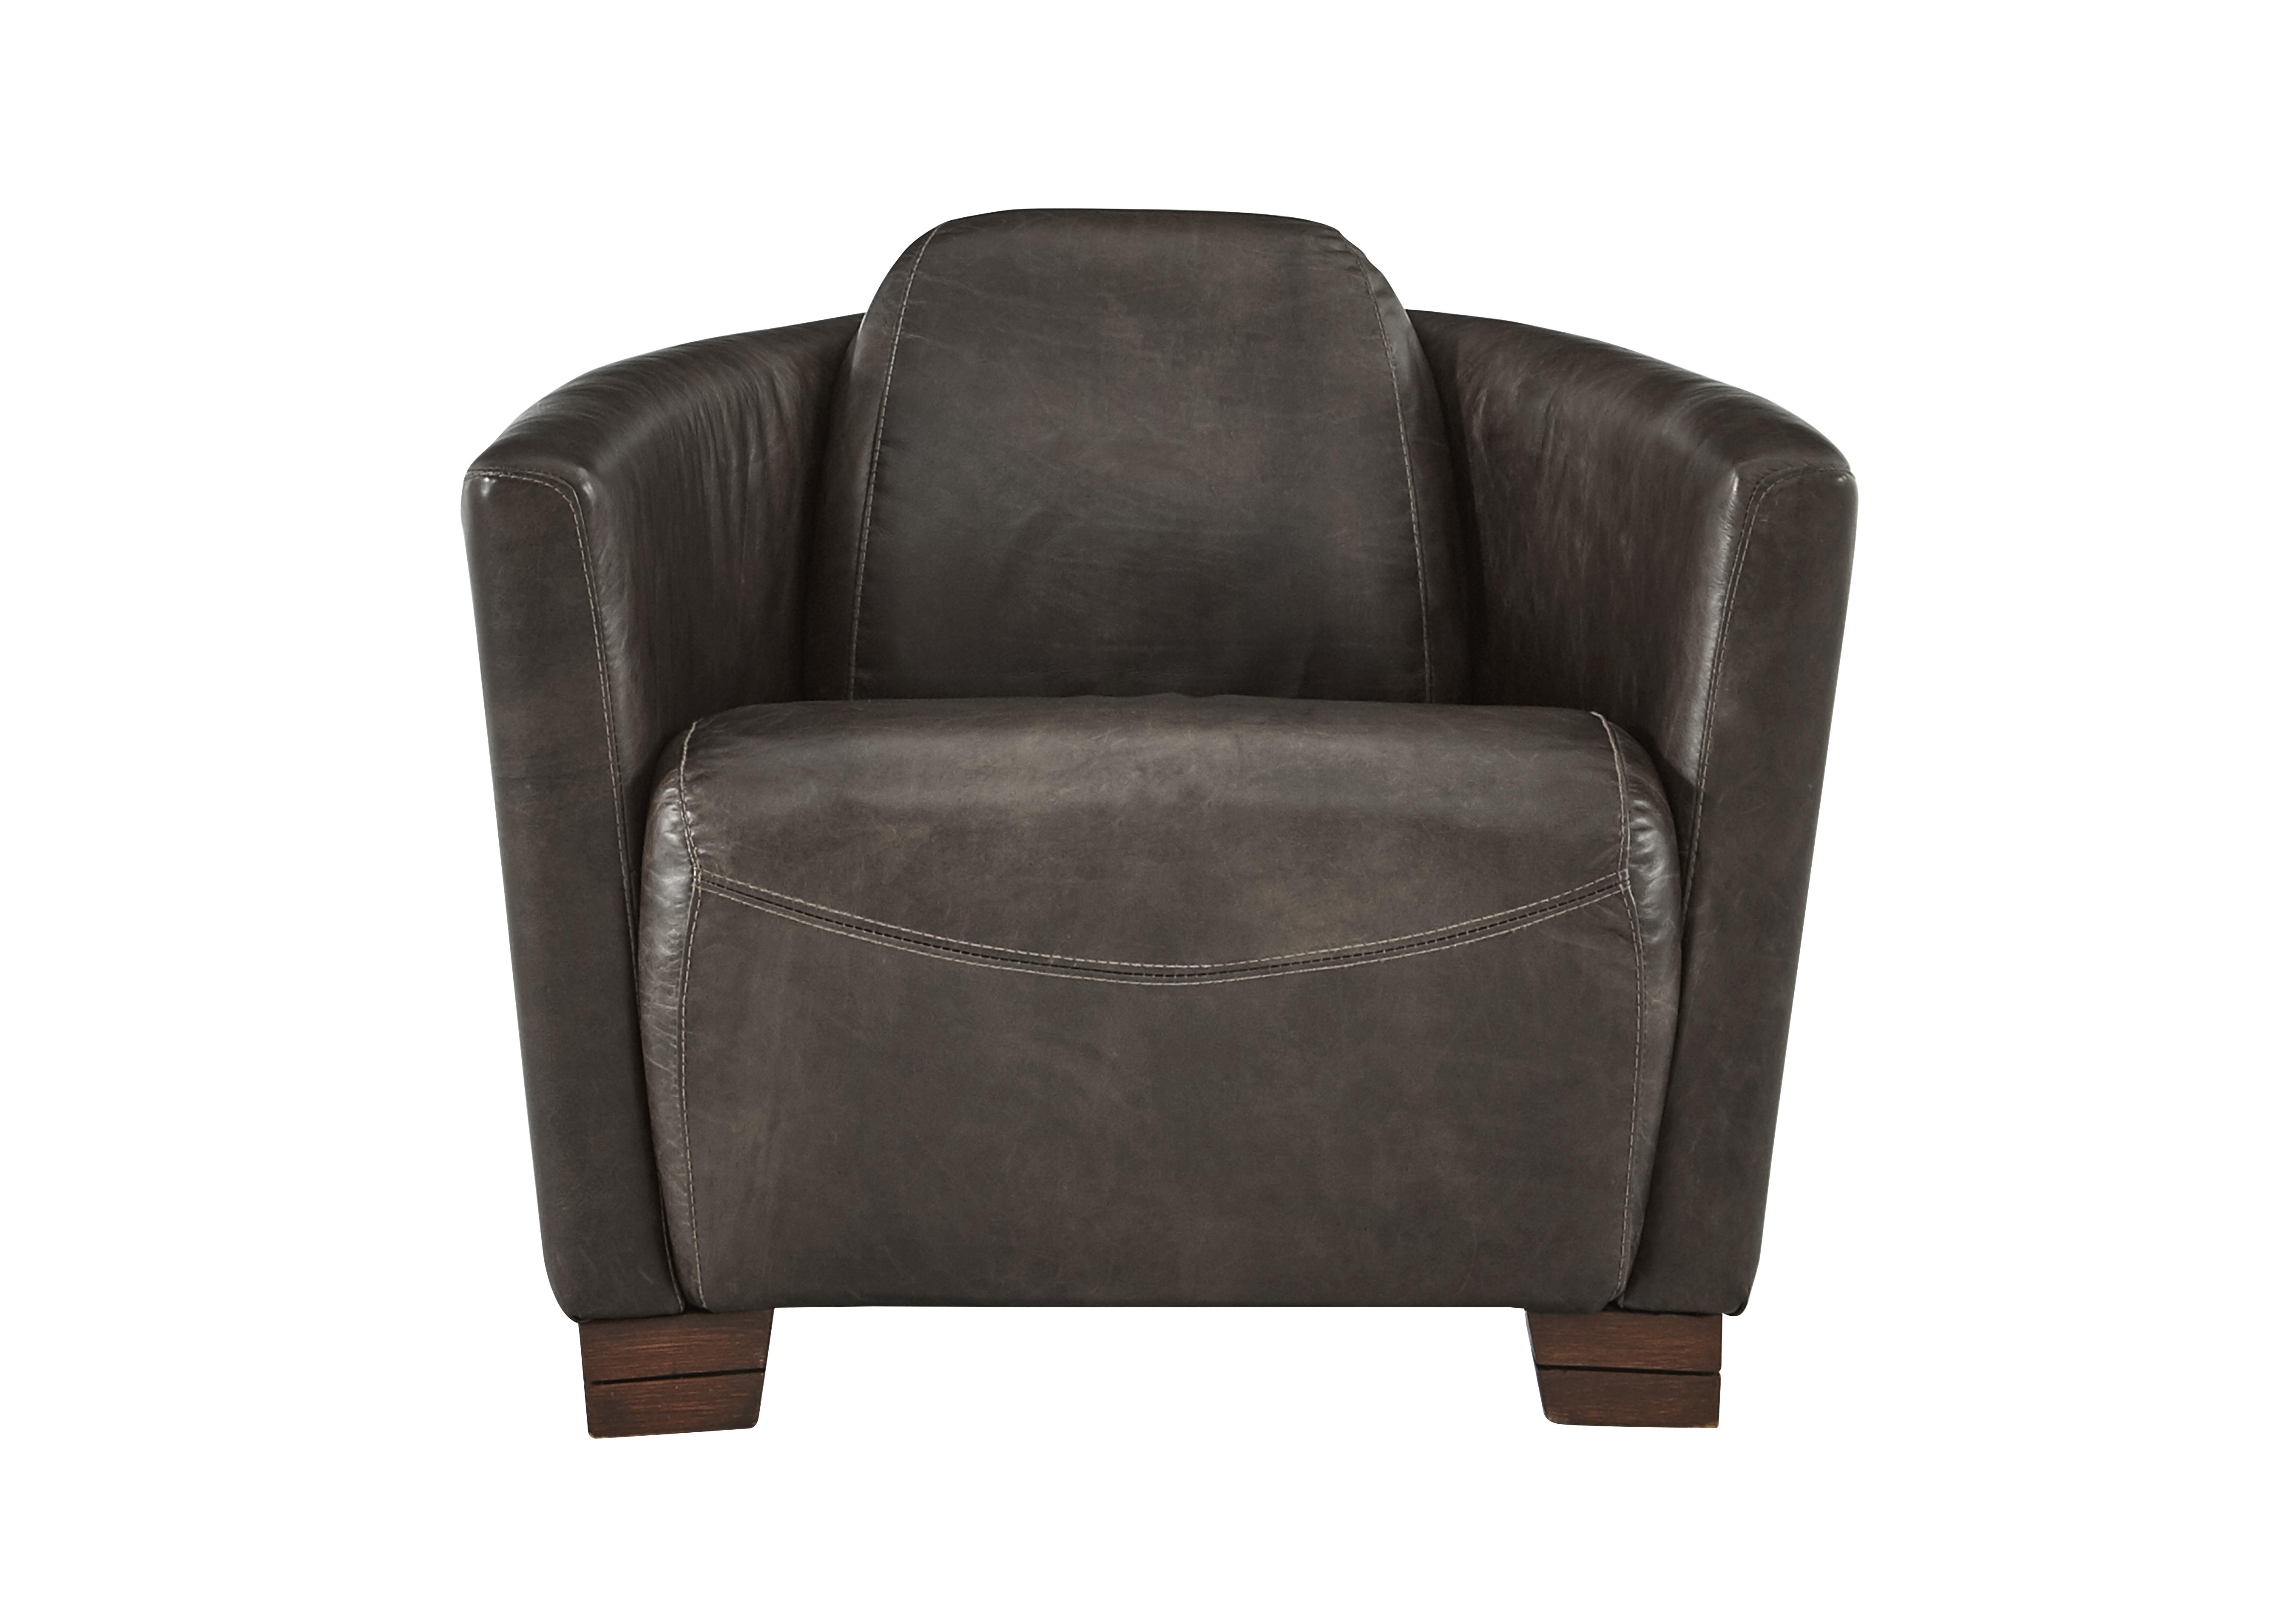 halo huxley leather armchair